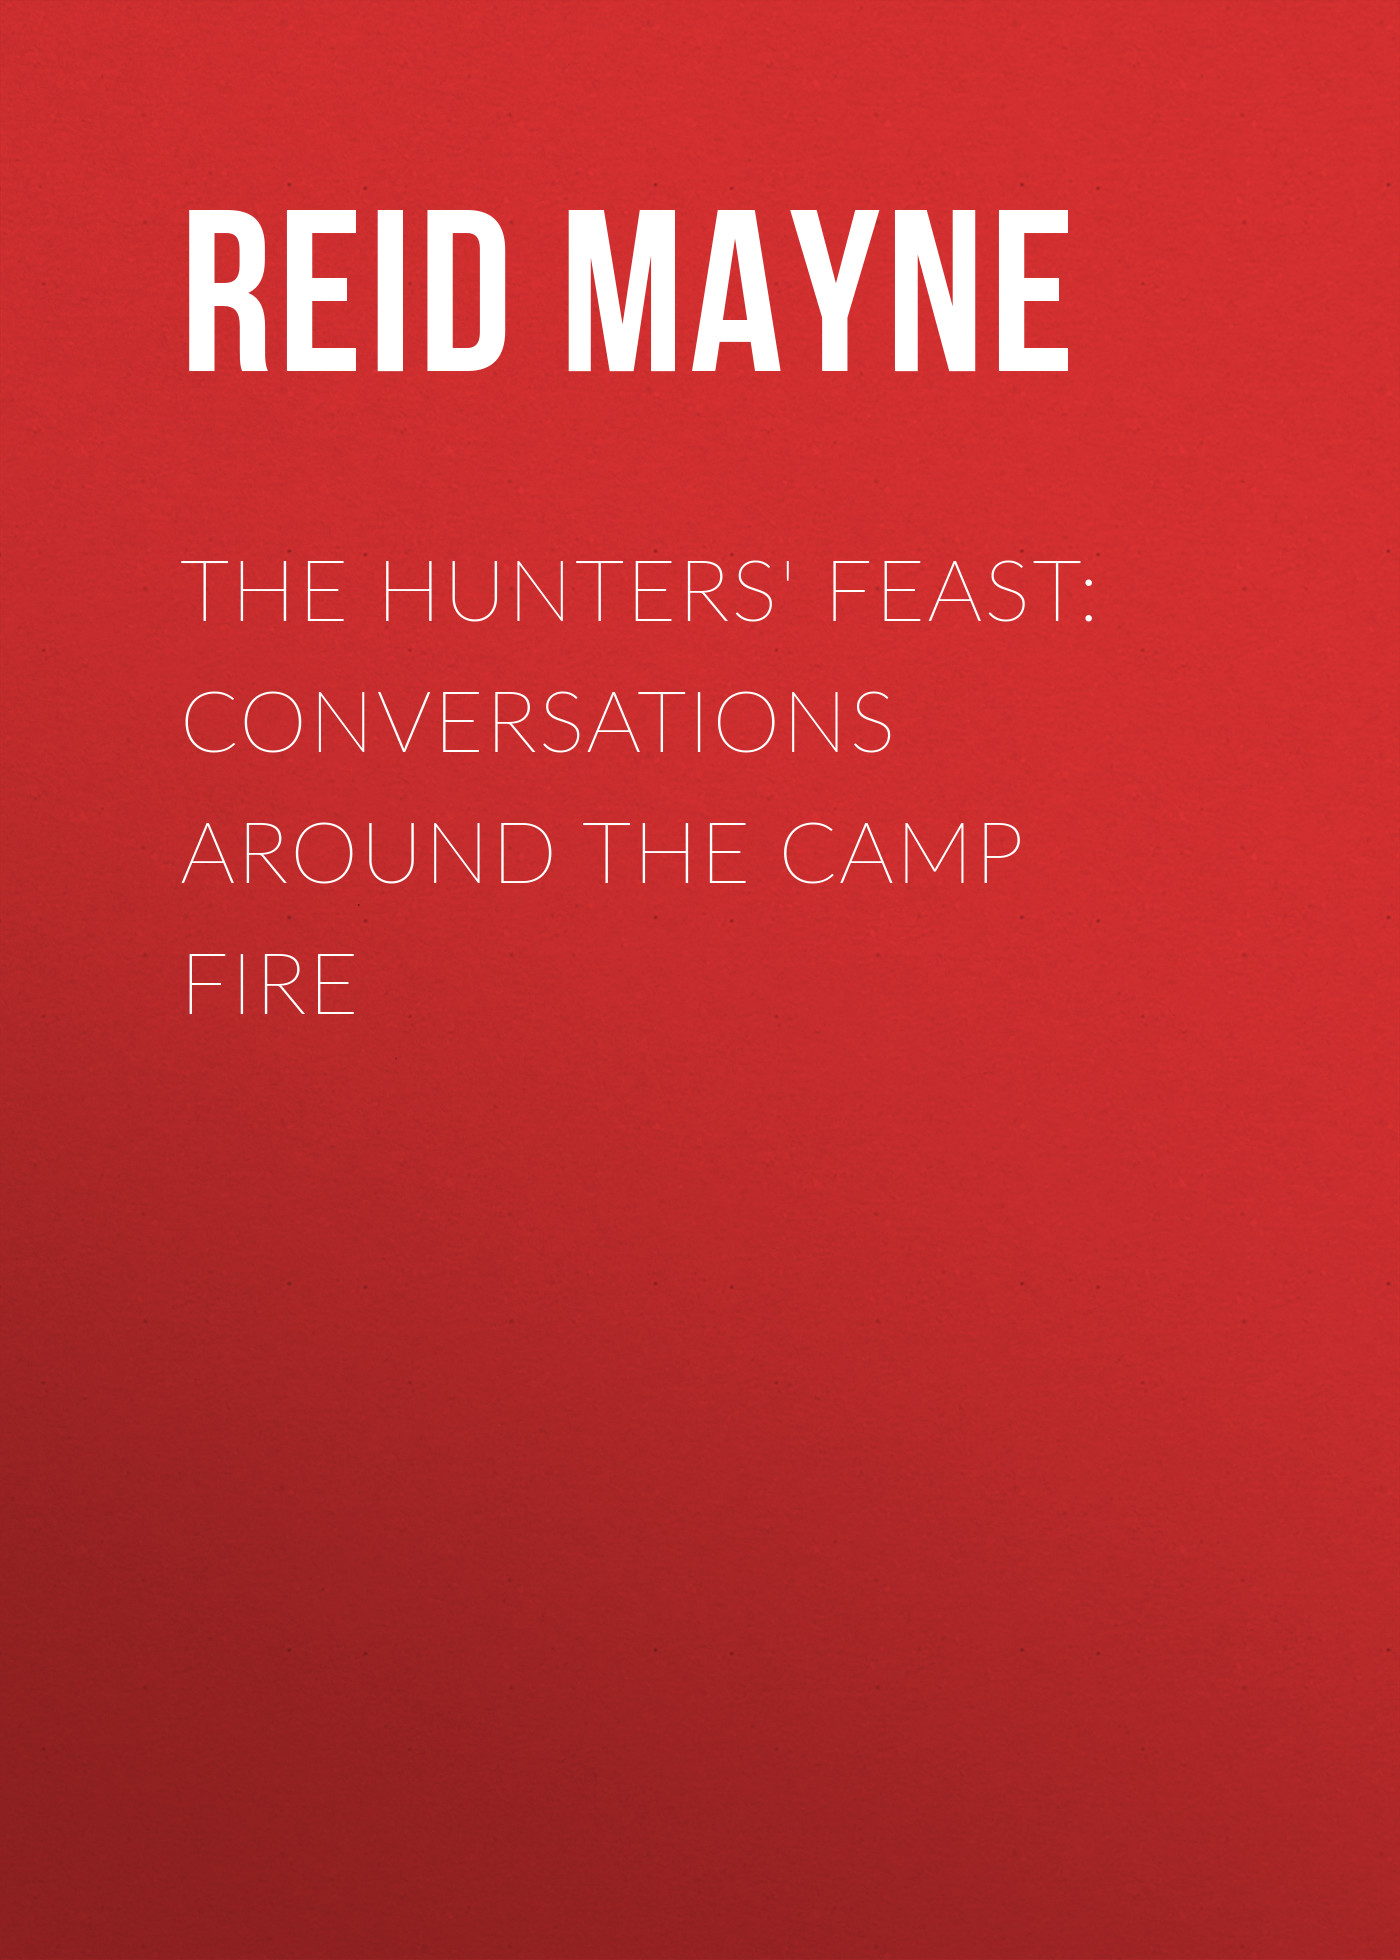 The Hunters' Feast: Conversations Around the Camp Fire